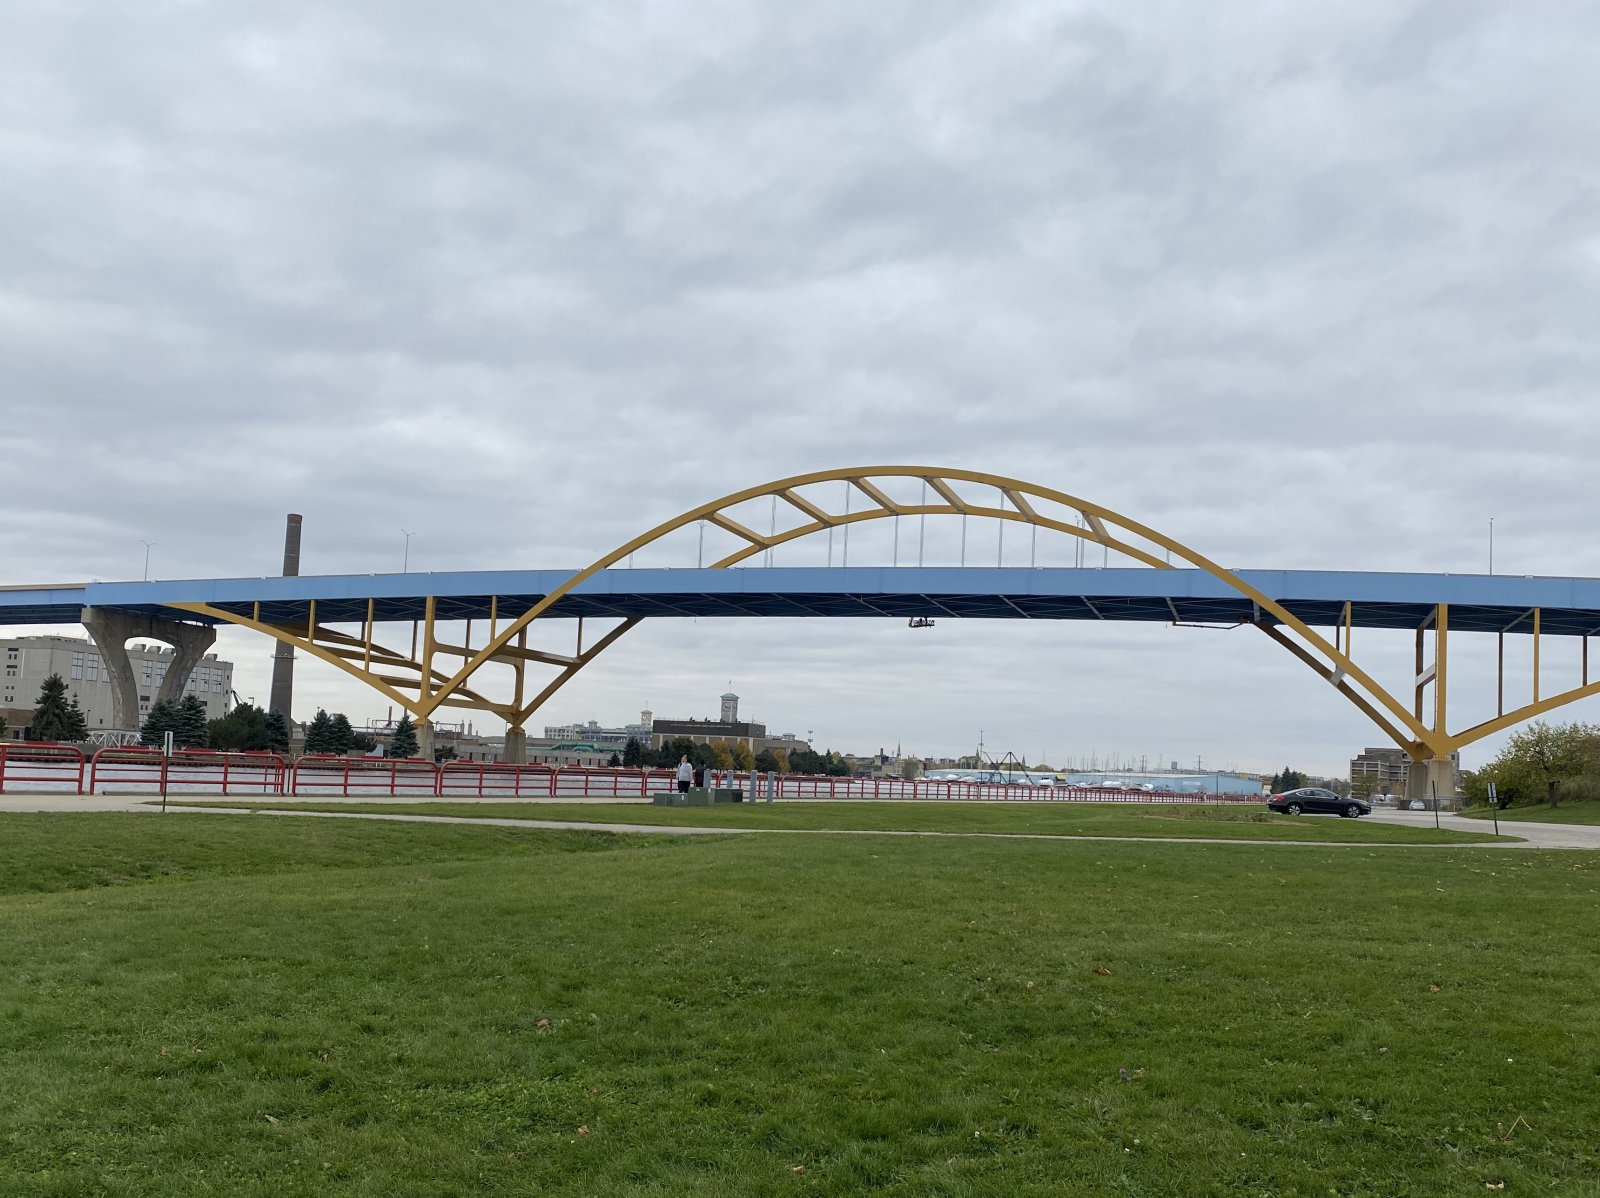 Hoan Bridge view from the park